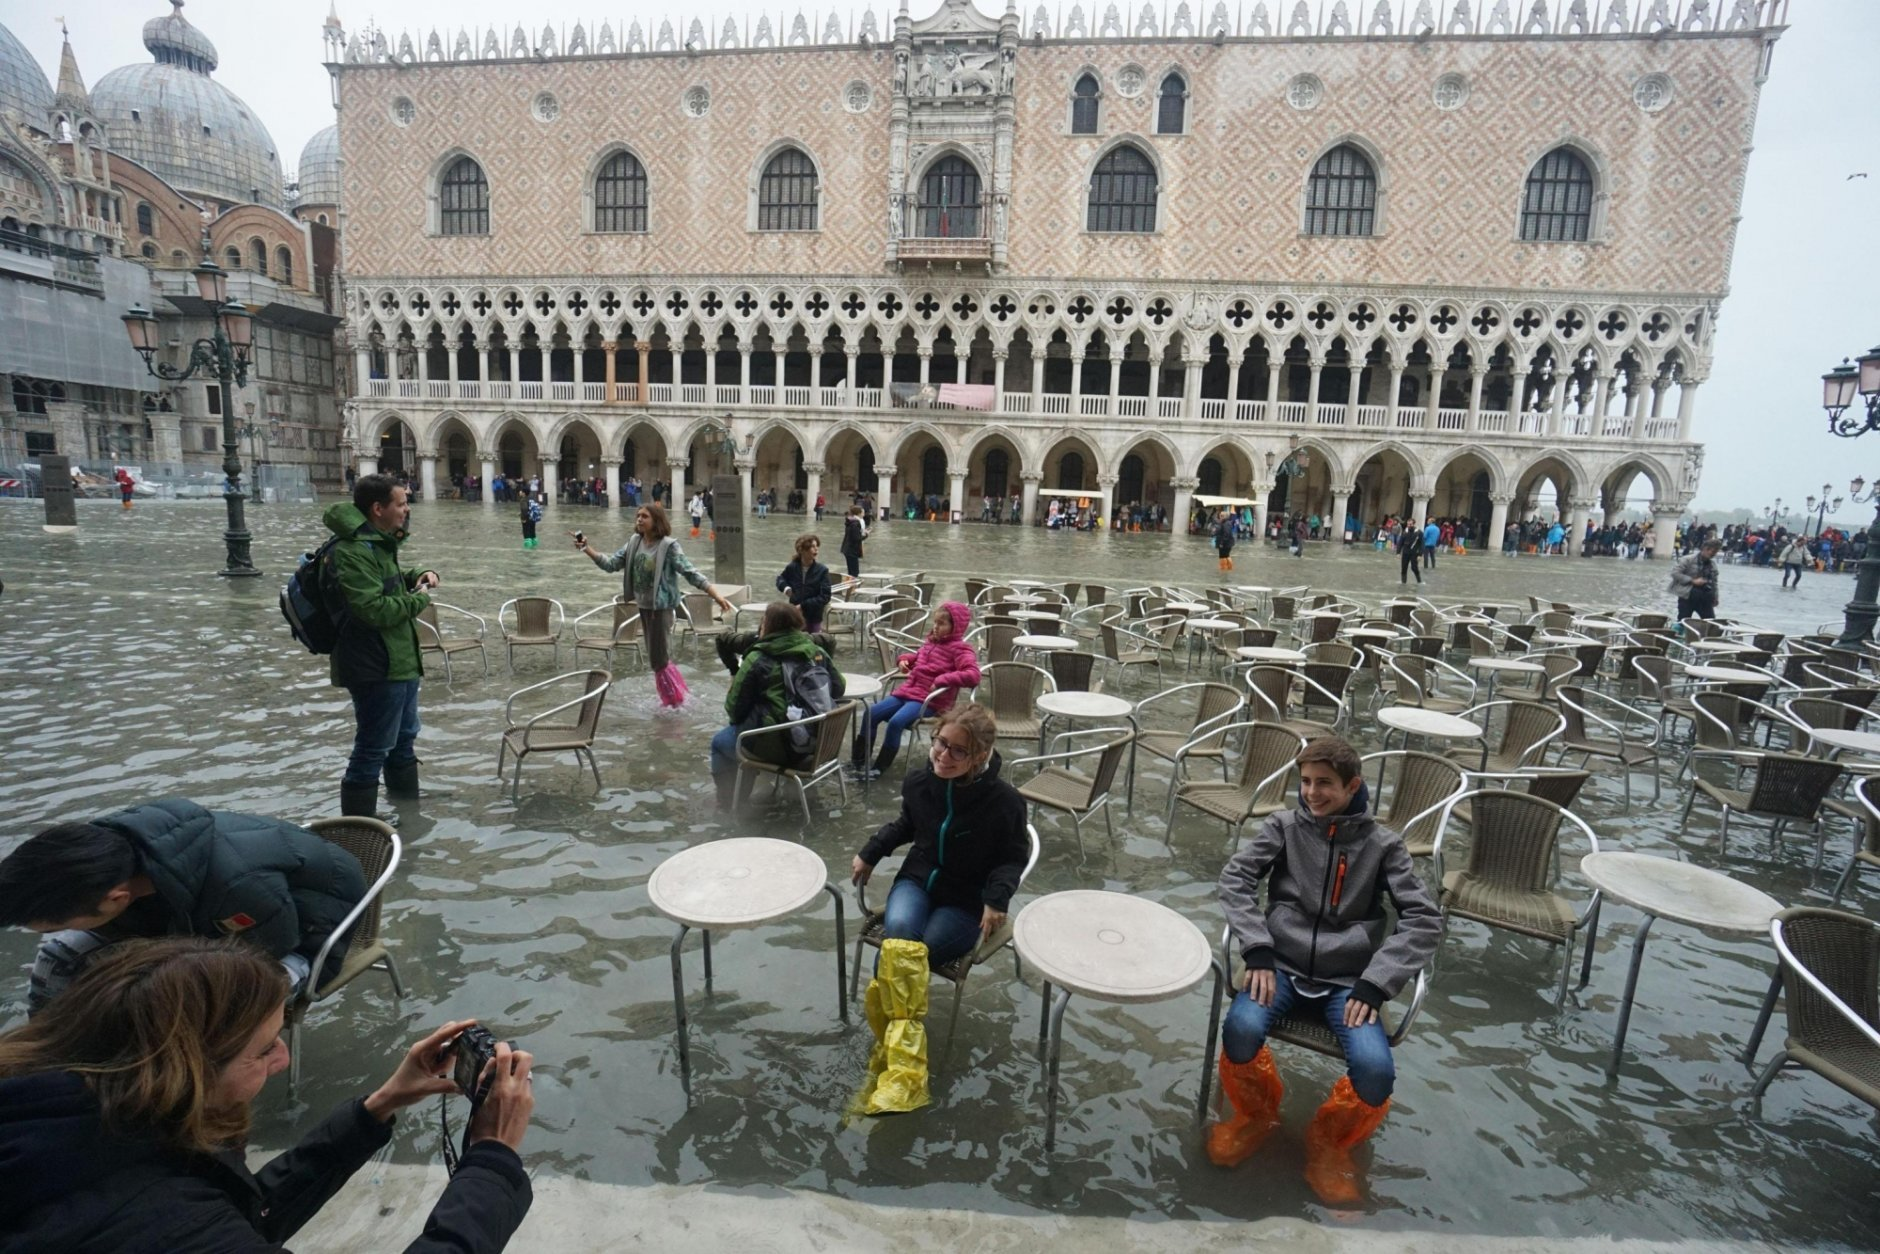 Tourists pose for a selfie in flooded St. Mark's Square in Venice, Italy, Thursday, Nov. 1, 2018 as rainstorms and strong winds have been battering the country. Two people were killed when a falling tree crushed their car in the mountainous countryside in northwestern Italy, as rainstorms and strong winds continued to pummel much of the country. (Andrea Merola/ANSA via AP)